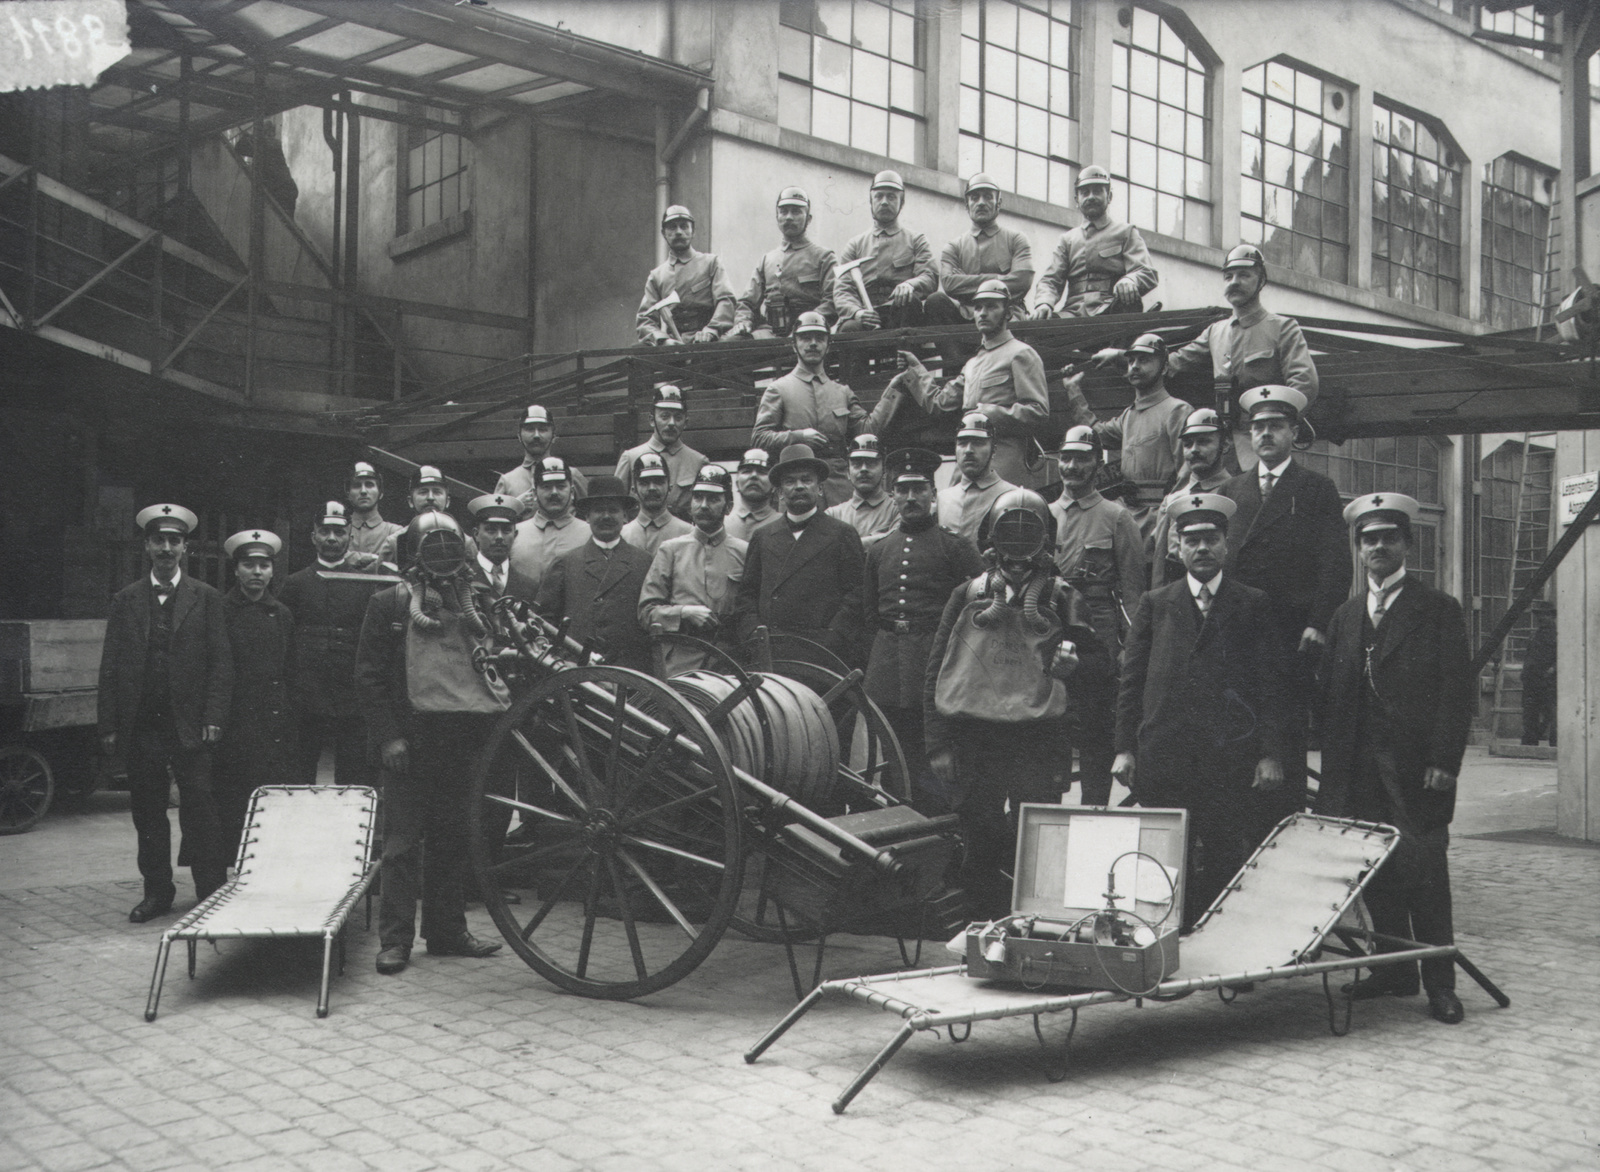 100 years of the Bosch plant fire service